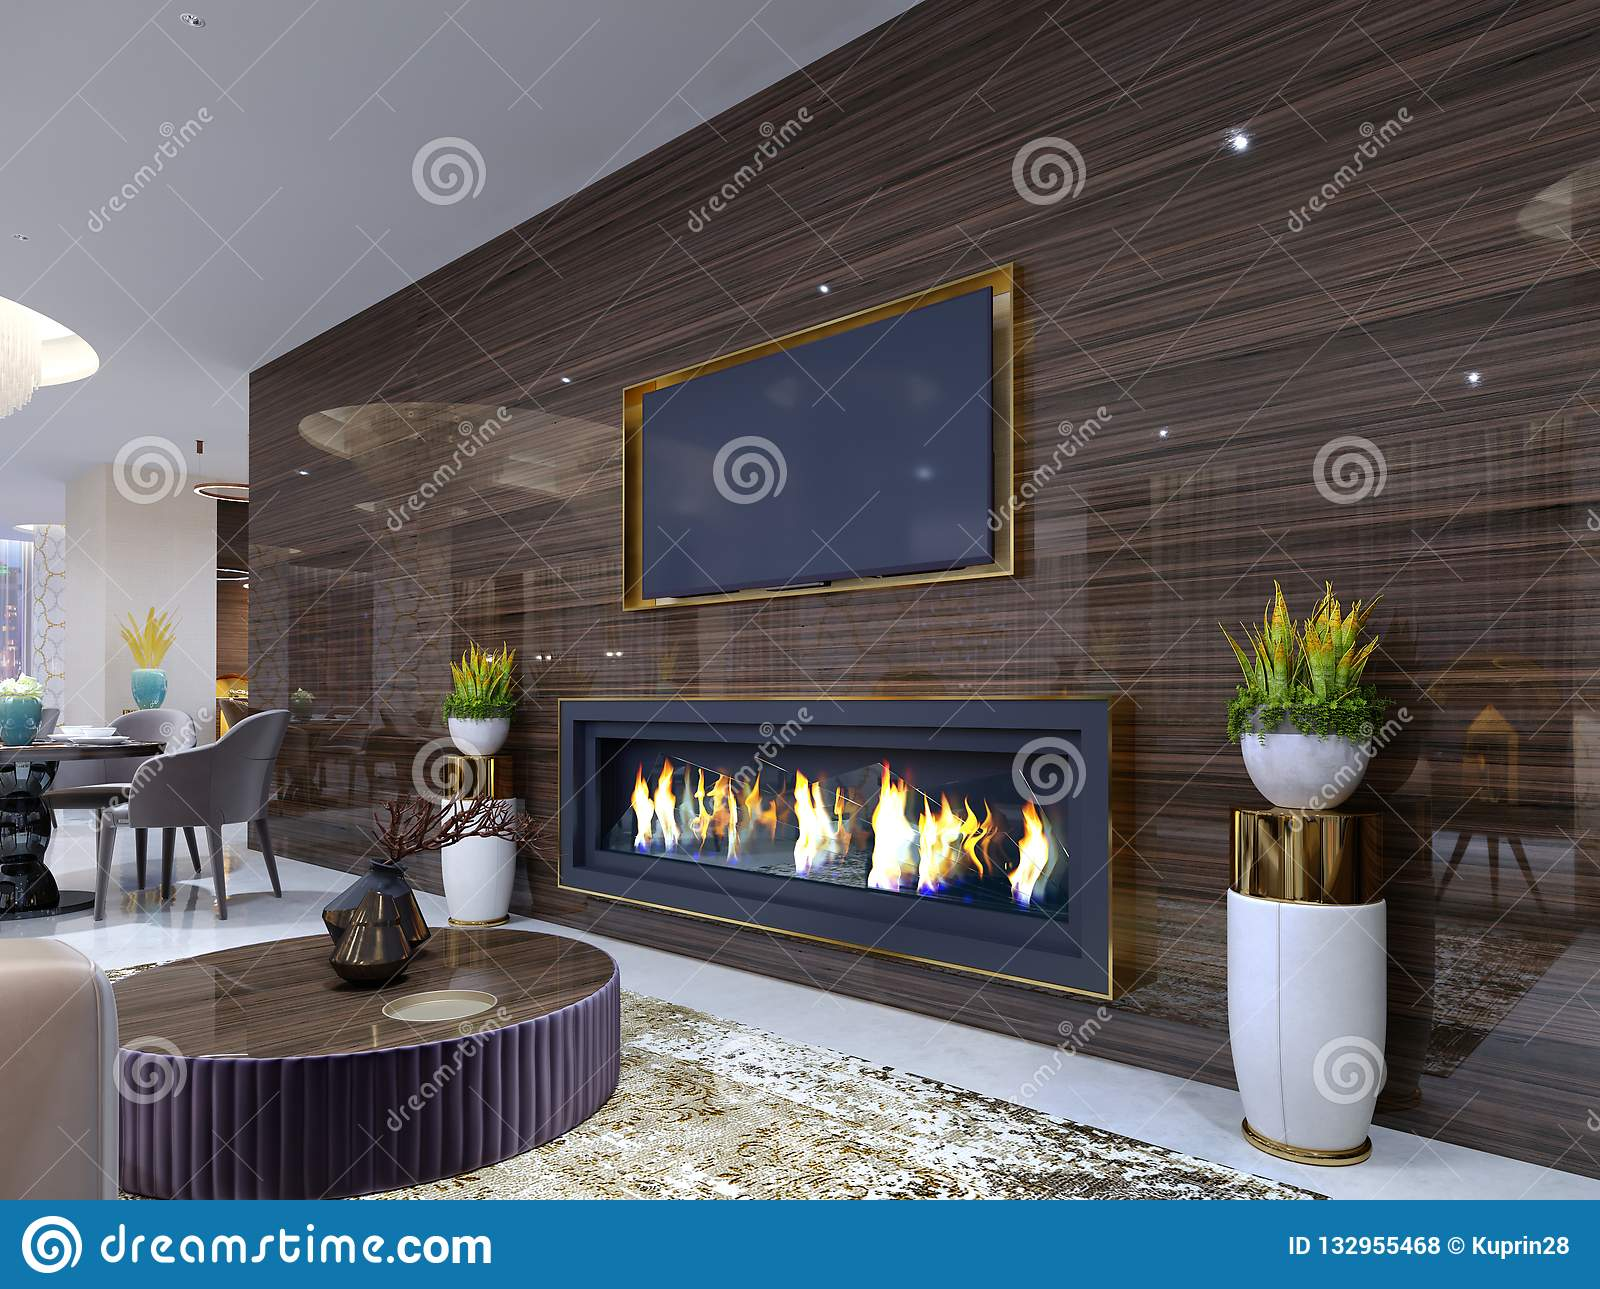 Modern Fireplace Images Luxurious Modern Fireplace In The Hotel In A Cozy Waiting Area